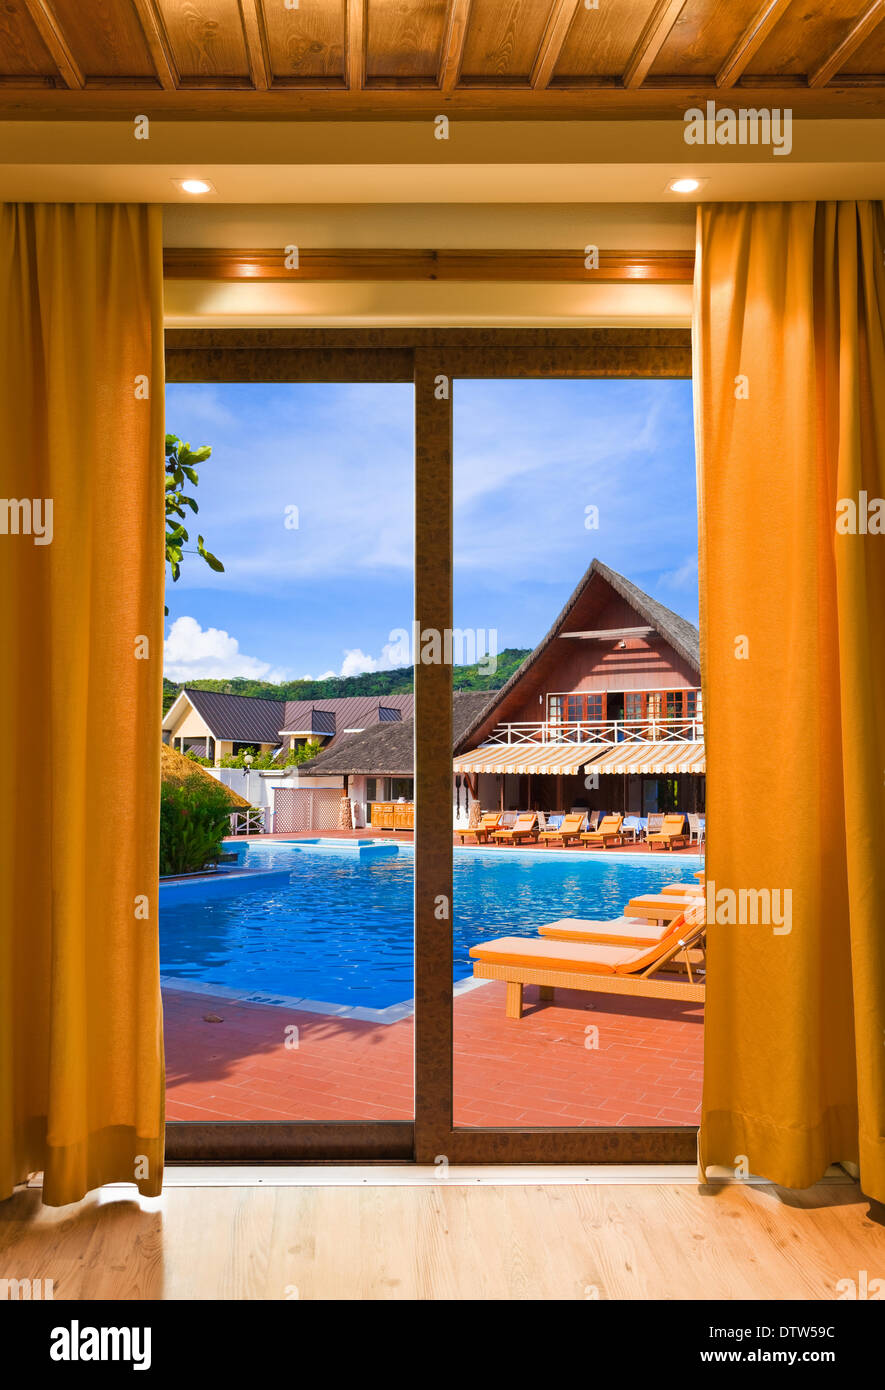 Hotel room and water pool - Stock Image